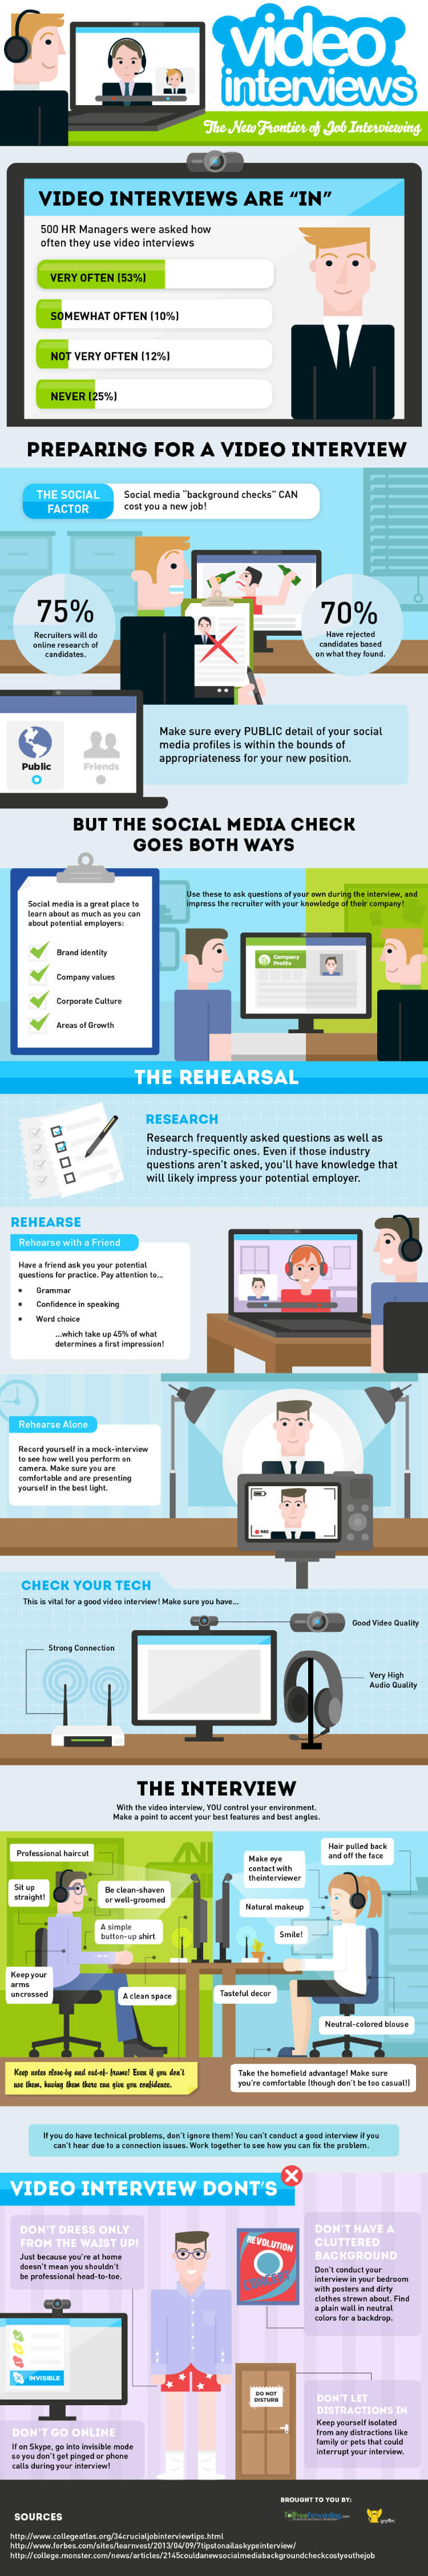 Video Interviews: The New Frontier of Job Interviewing